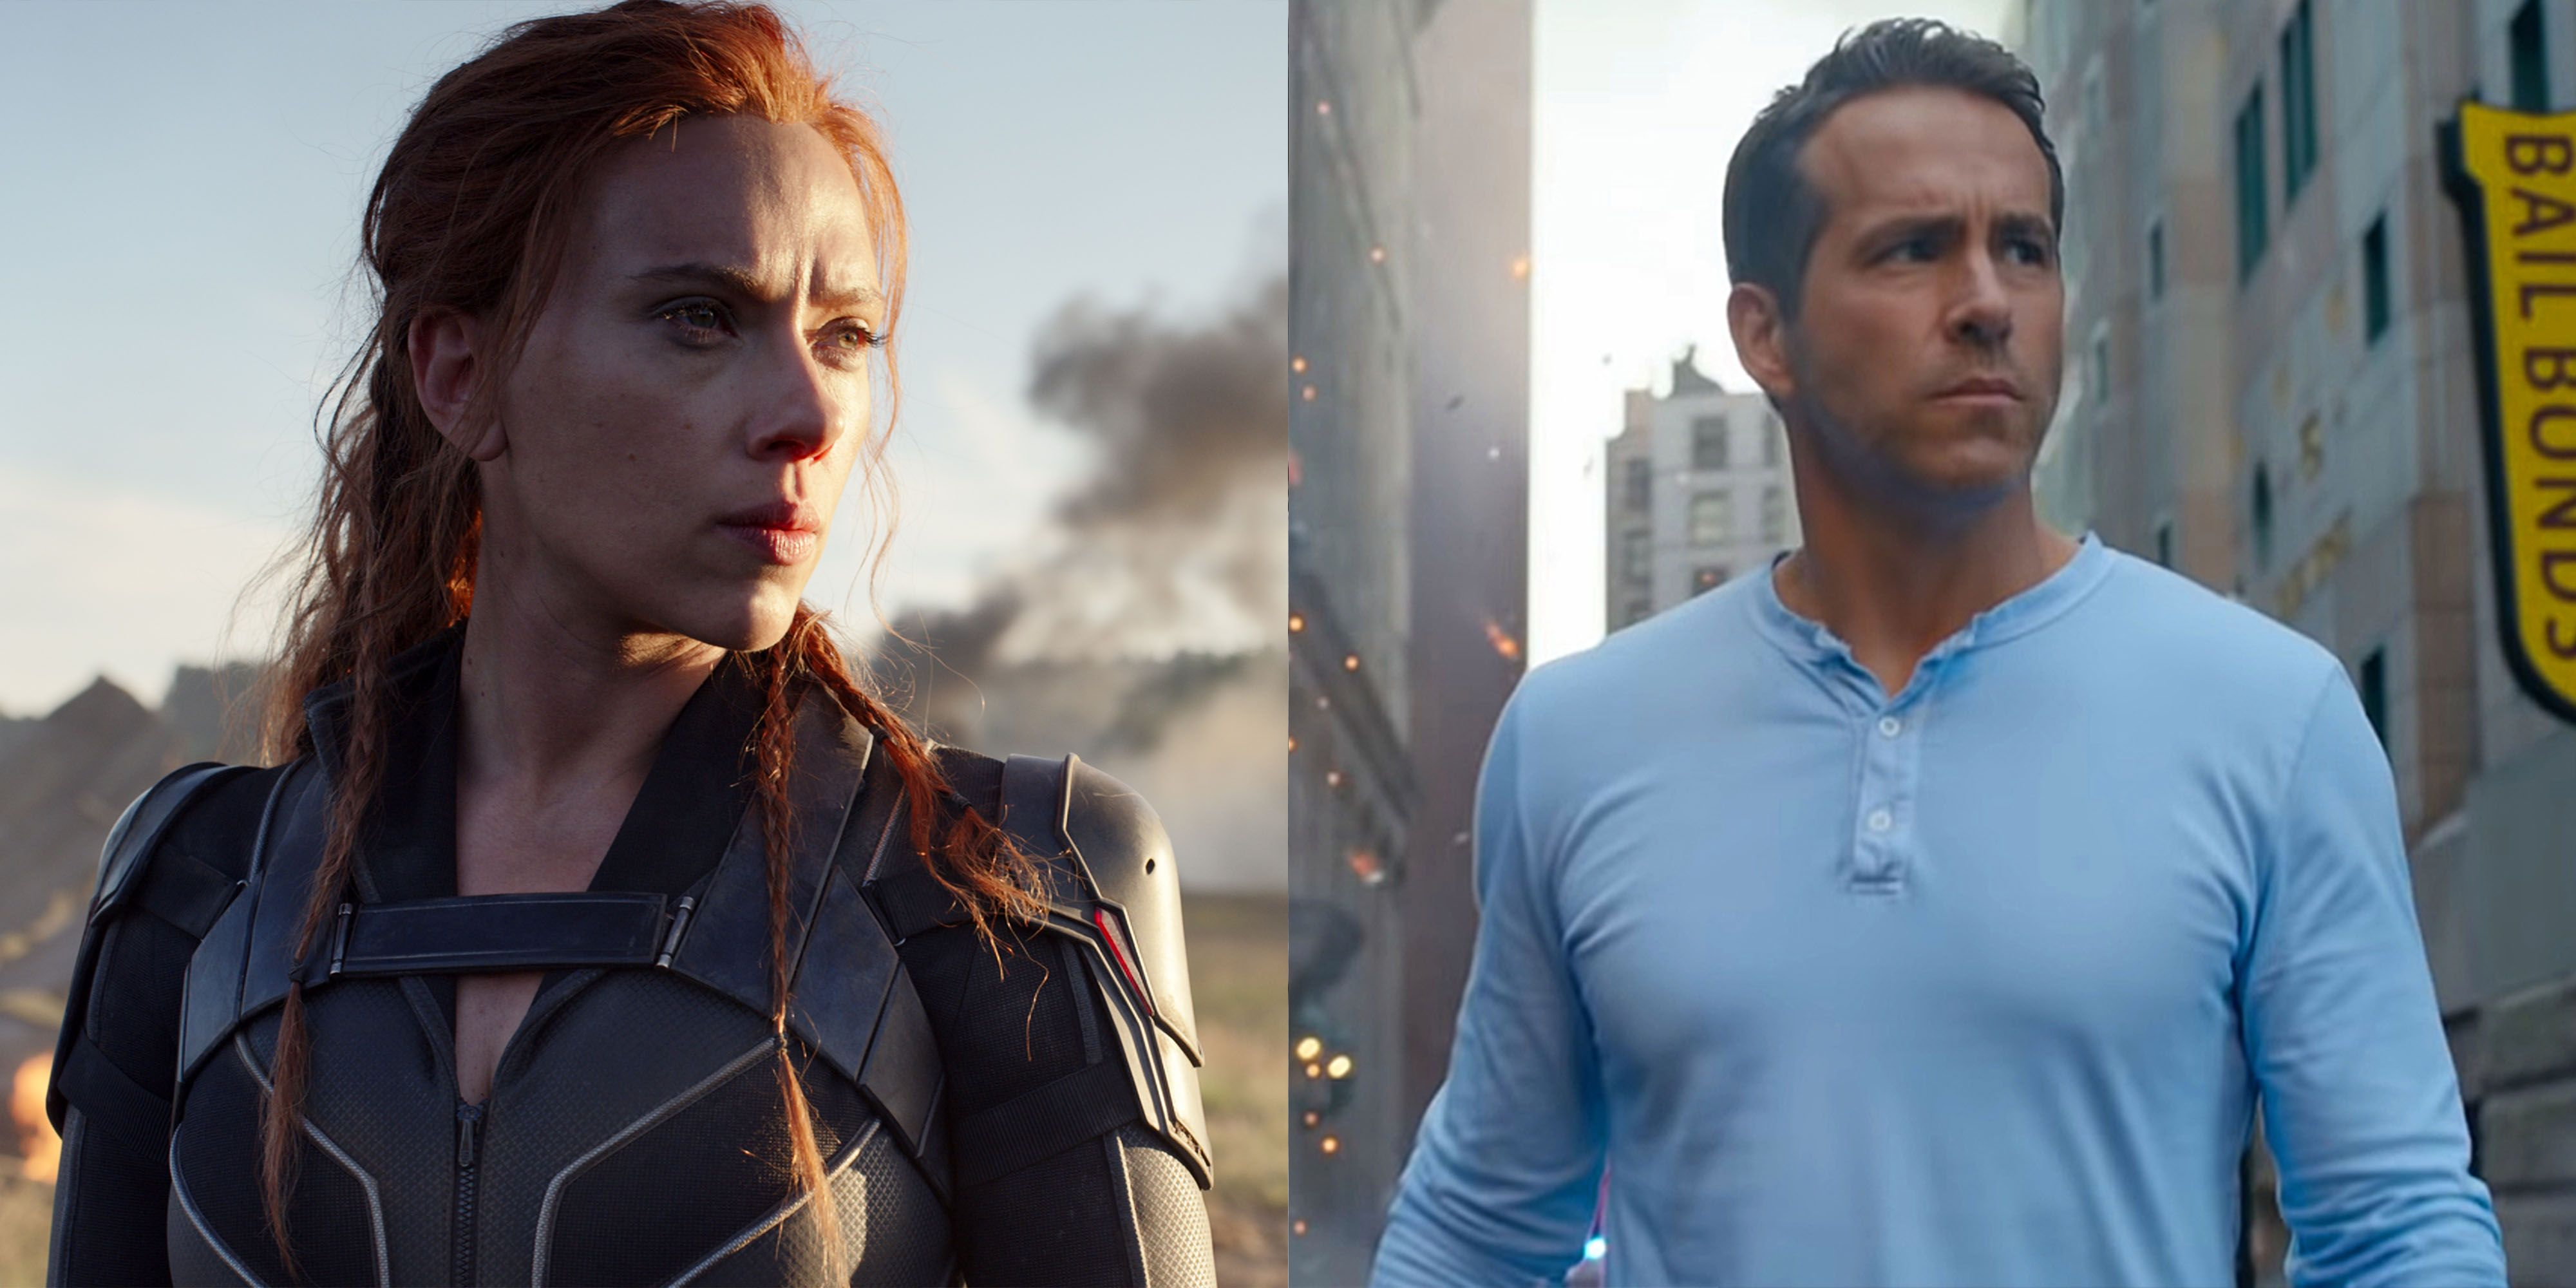 The 20 Best Action Movies of 20 So Far